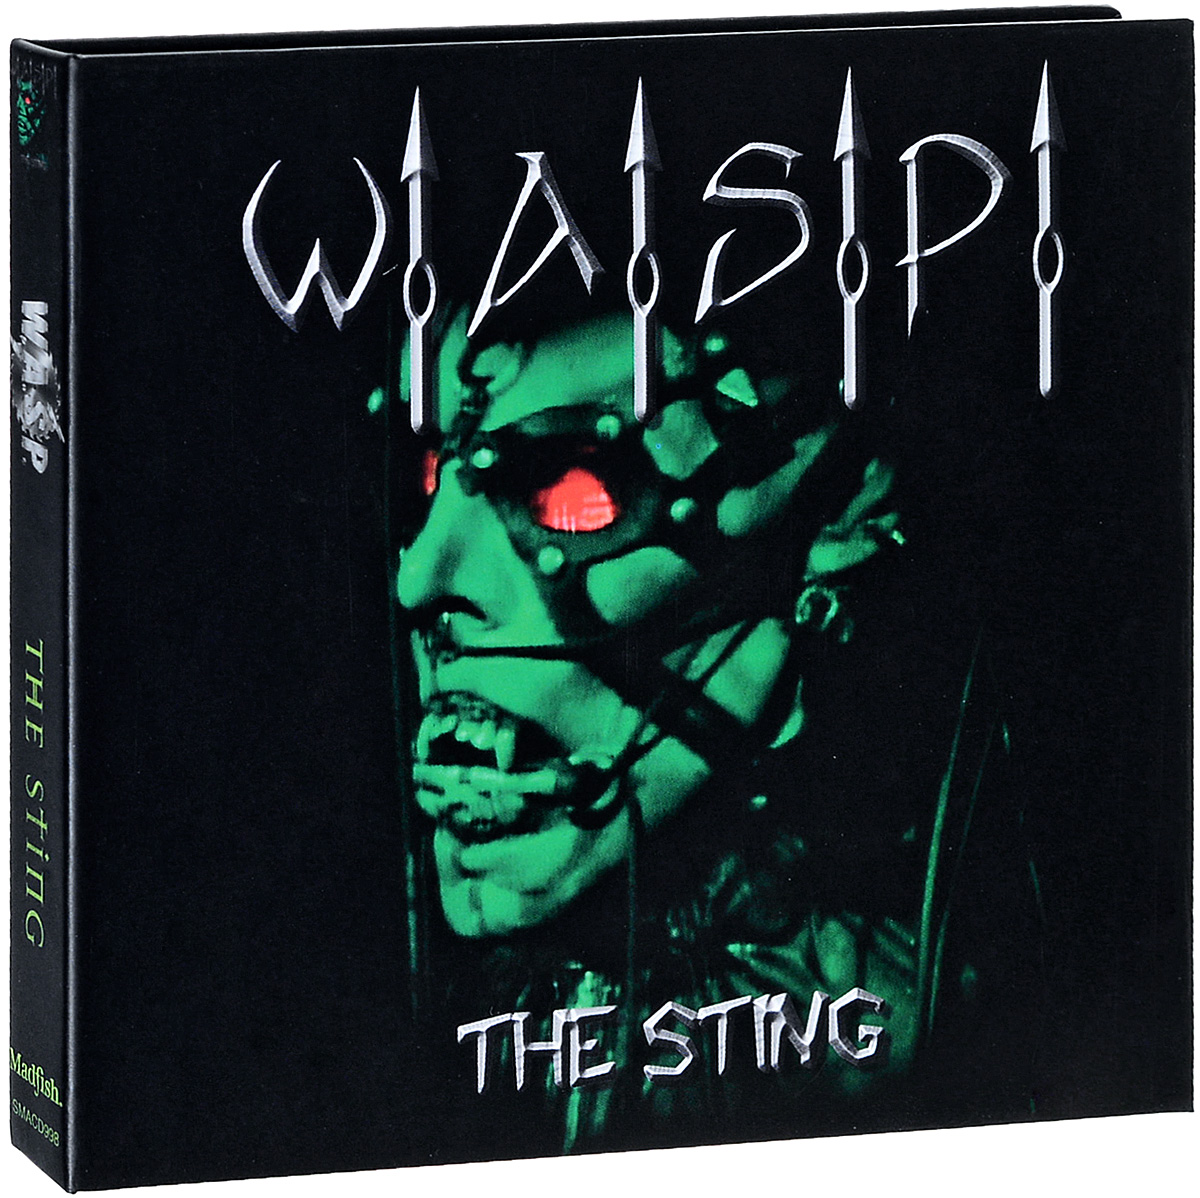 W.A.S.P. - The Sting (Live at the Key Club, L.A.) (DVD + CD) sting sting the complete studio collection 16 lp